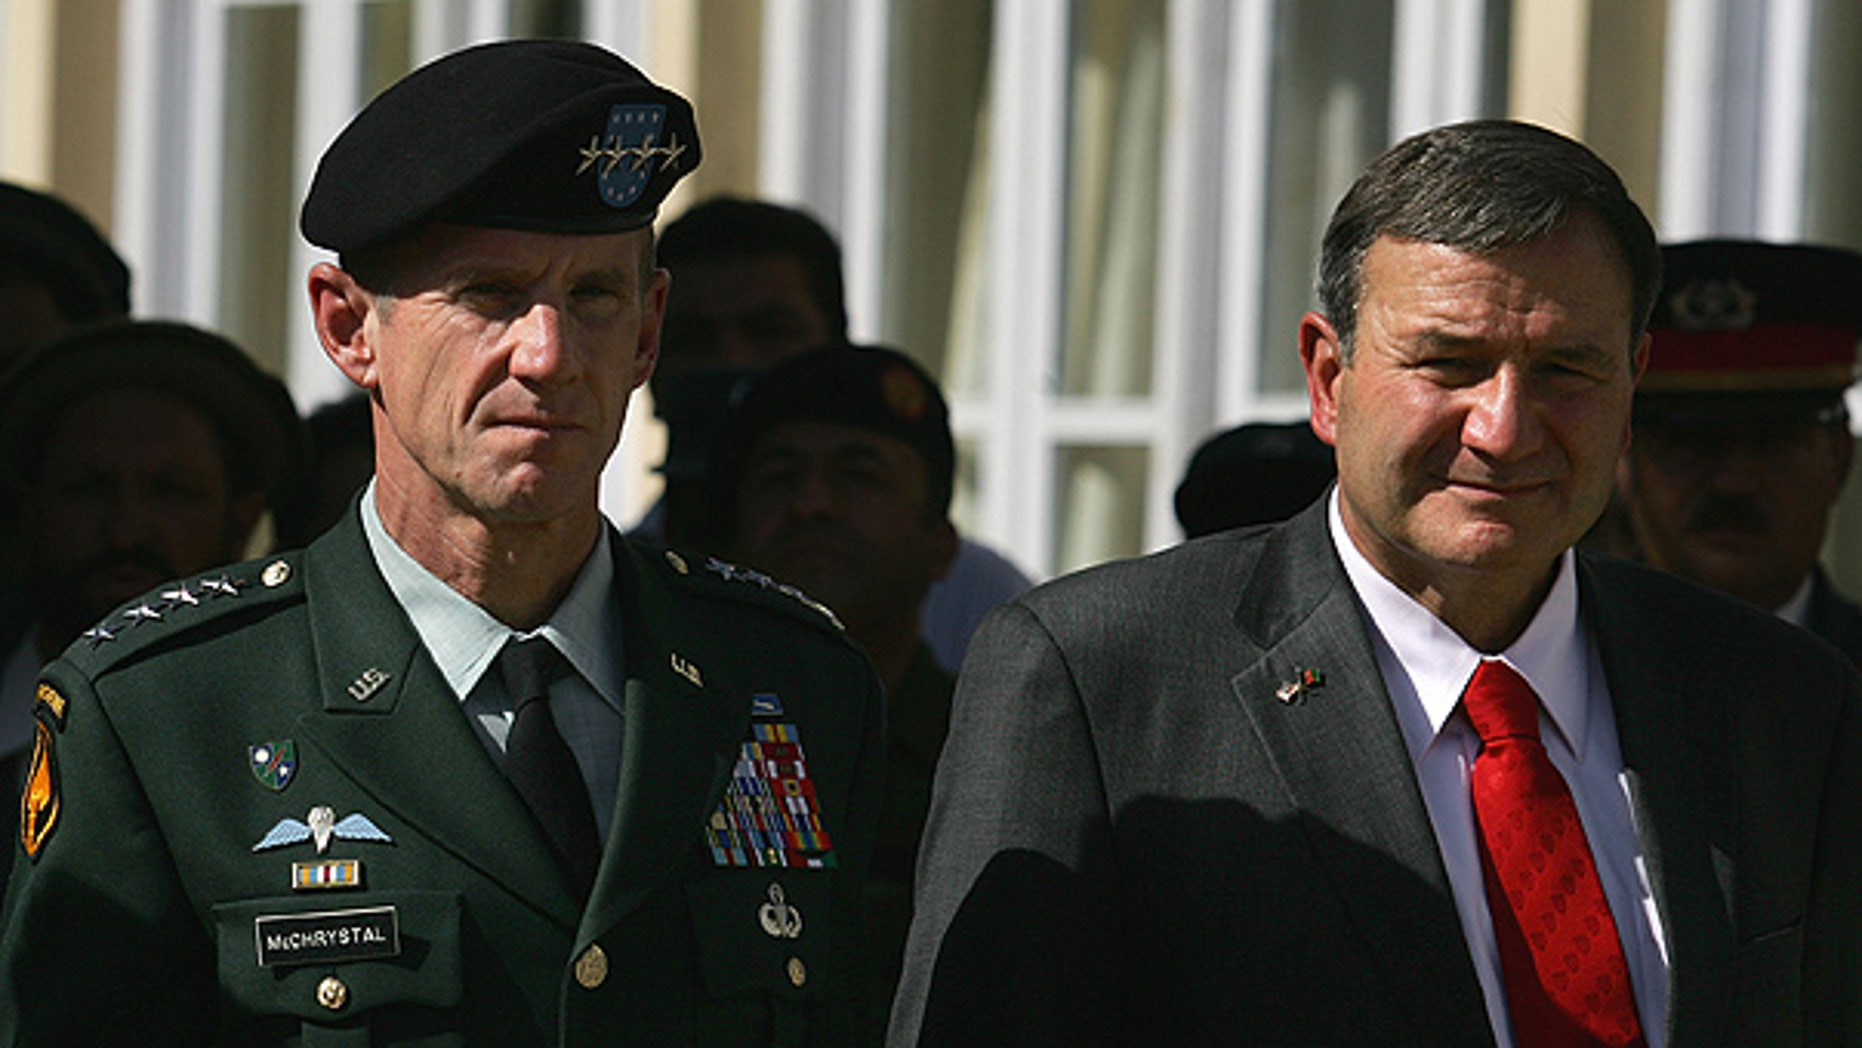 Oct. 14: General Stanley McChrystal and U.S. Ambassador Karl Eikenberry look on during a memorial service to honor members of the Afghan National Security Forces who lost their lives. (AP)